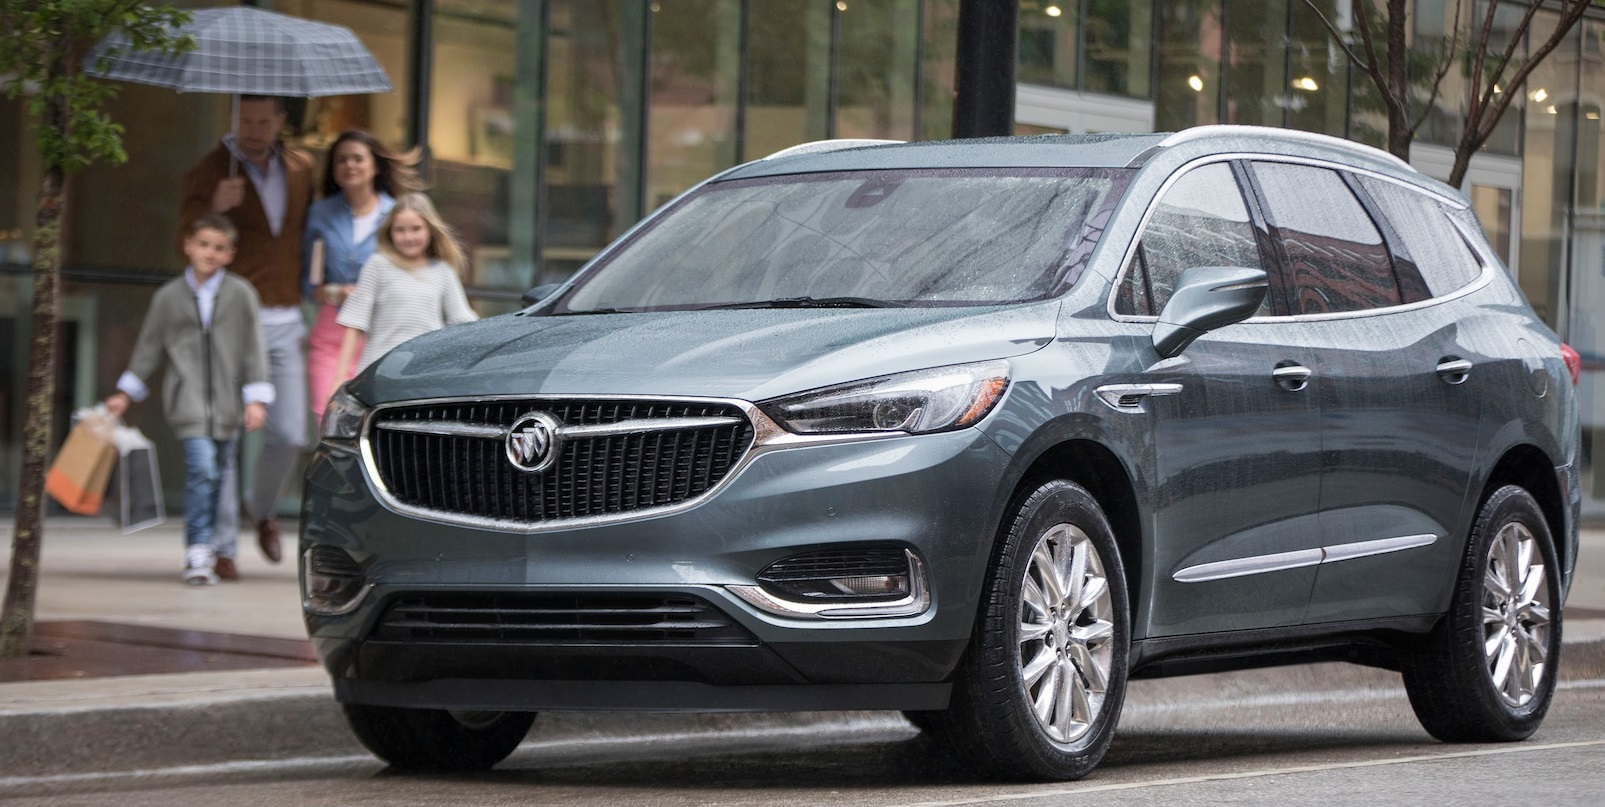 2019 Buick Enclave For Sale In Jonesboro, Ar - Cavenaugh New 2021 Buick Enclave Oil Capacity, Owner's Manual, Problems